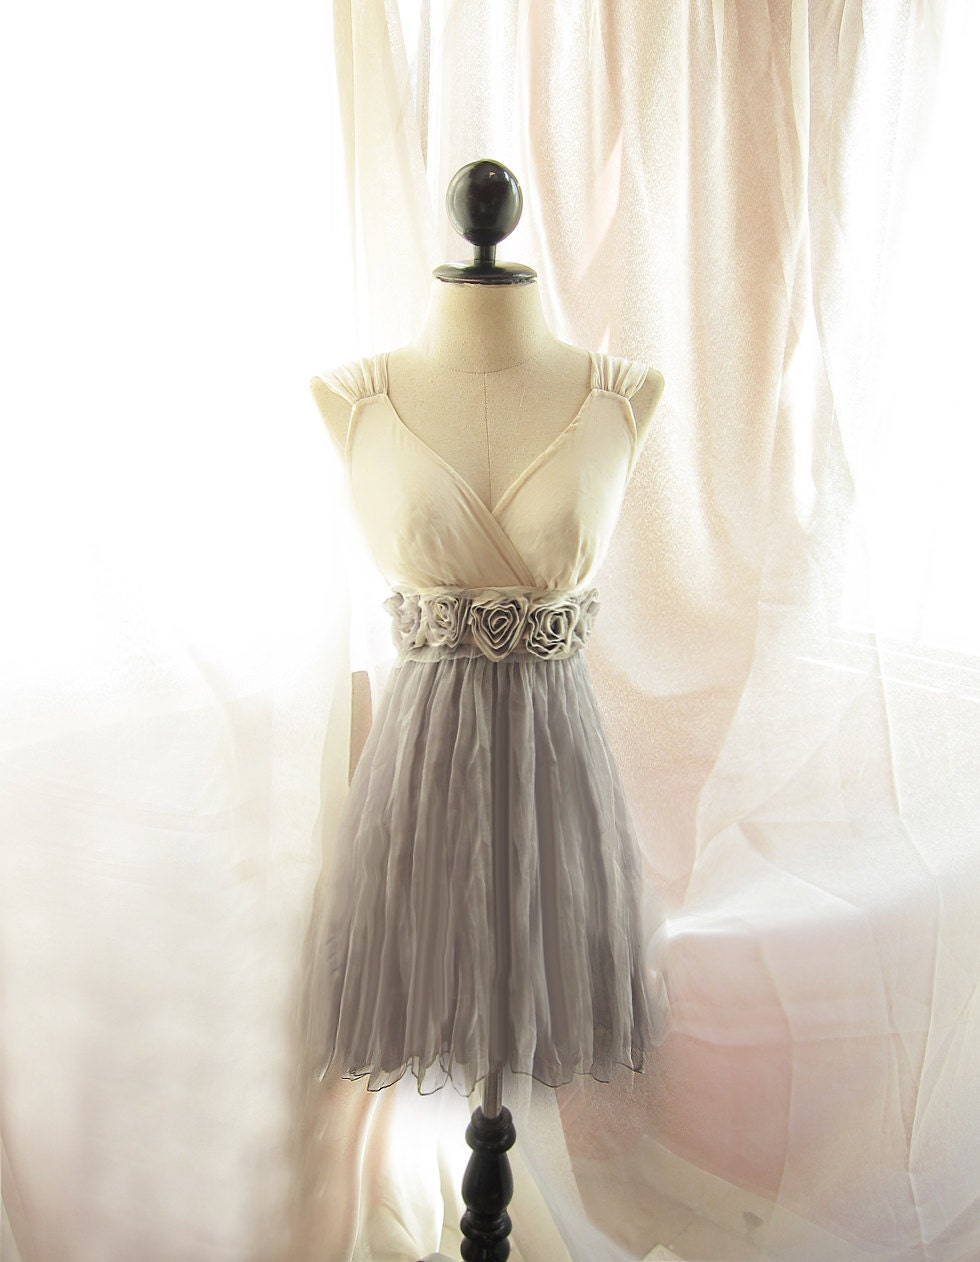 Dreamy Cream Misty Earl Gray Rainy Nostalgia Dusty Rosette Soft Heavenly Chiffon Romantic Marie Antoinette Dress